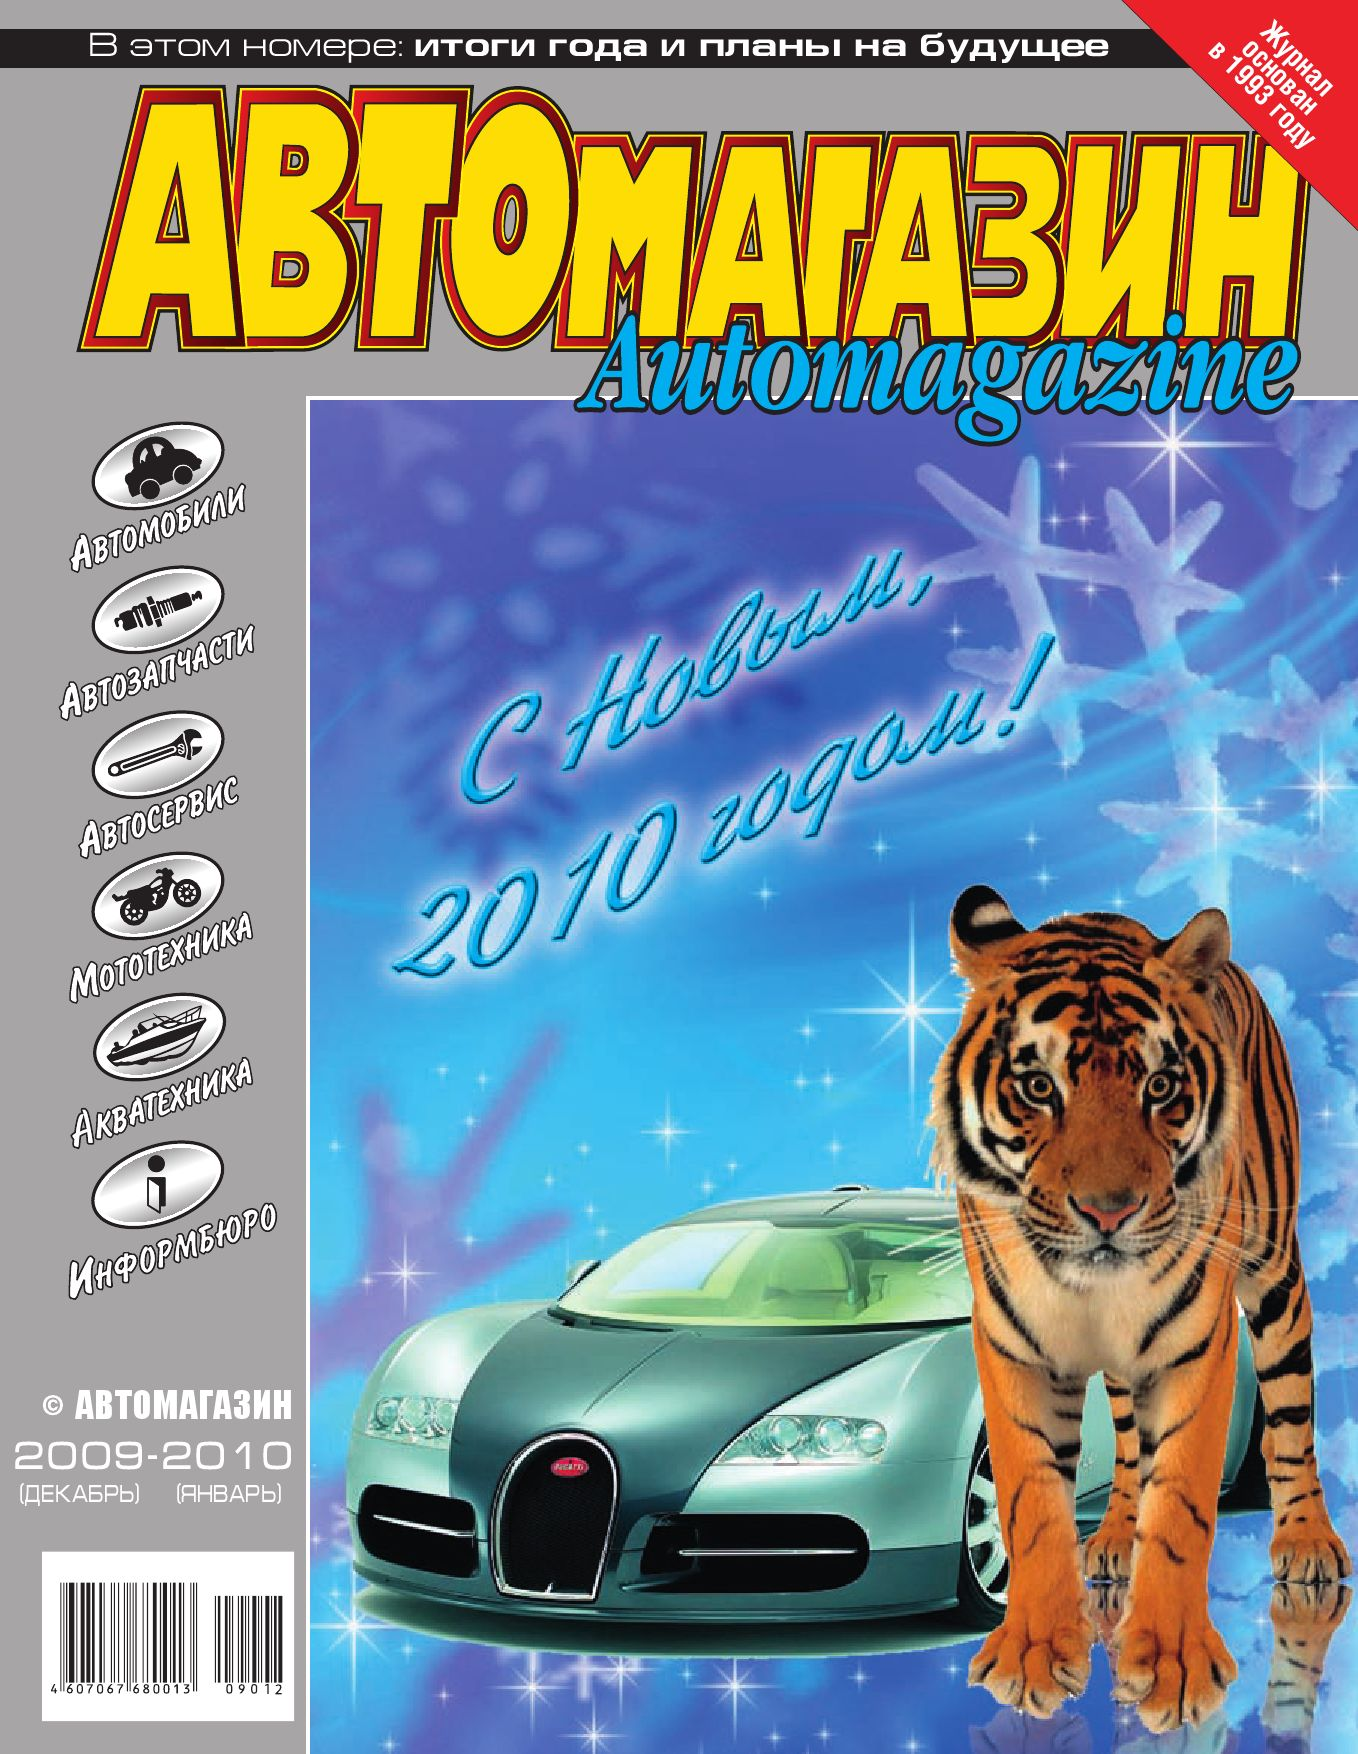 Автомагазин № by dygyn alexander issuu